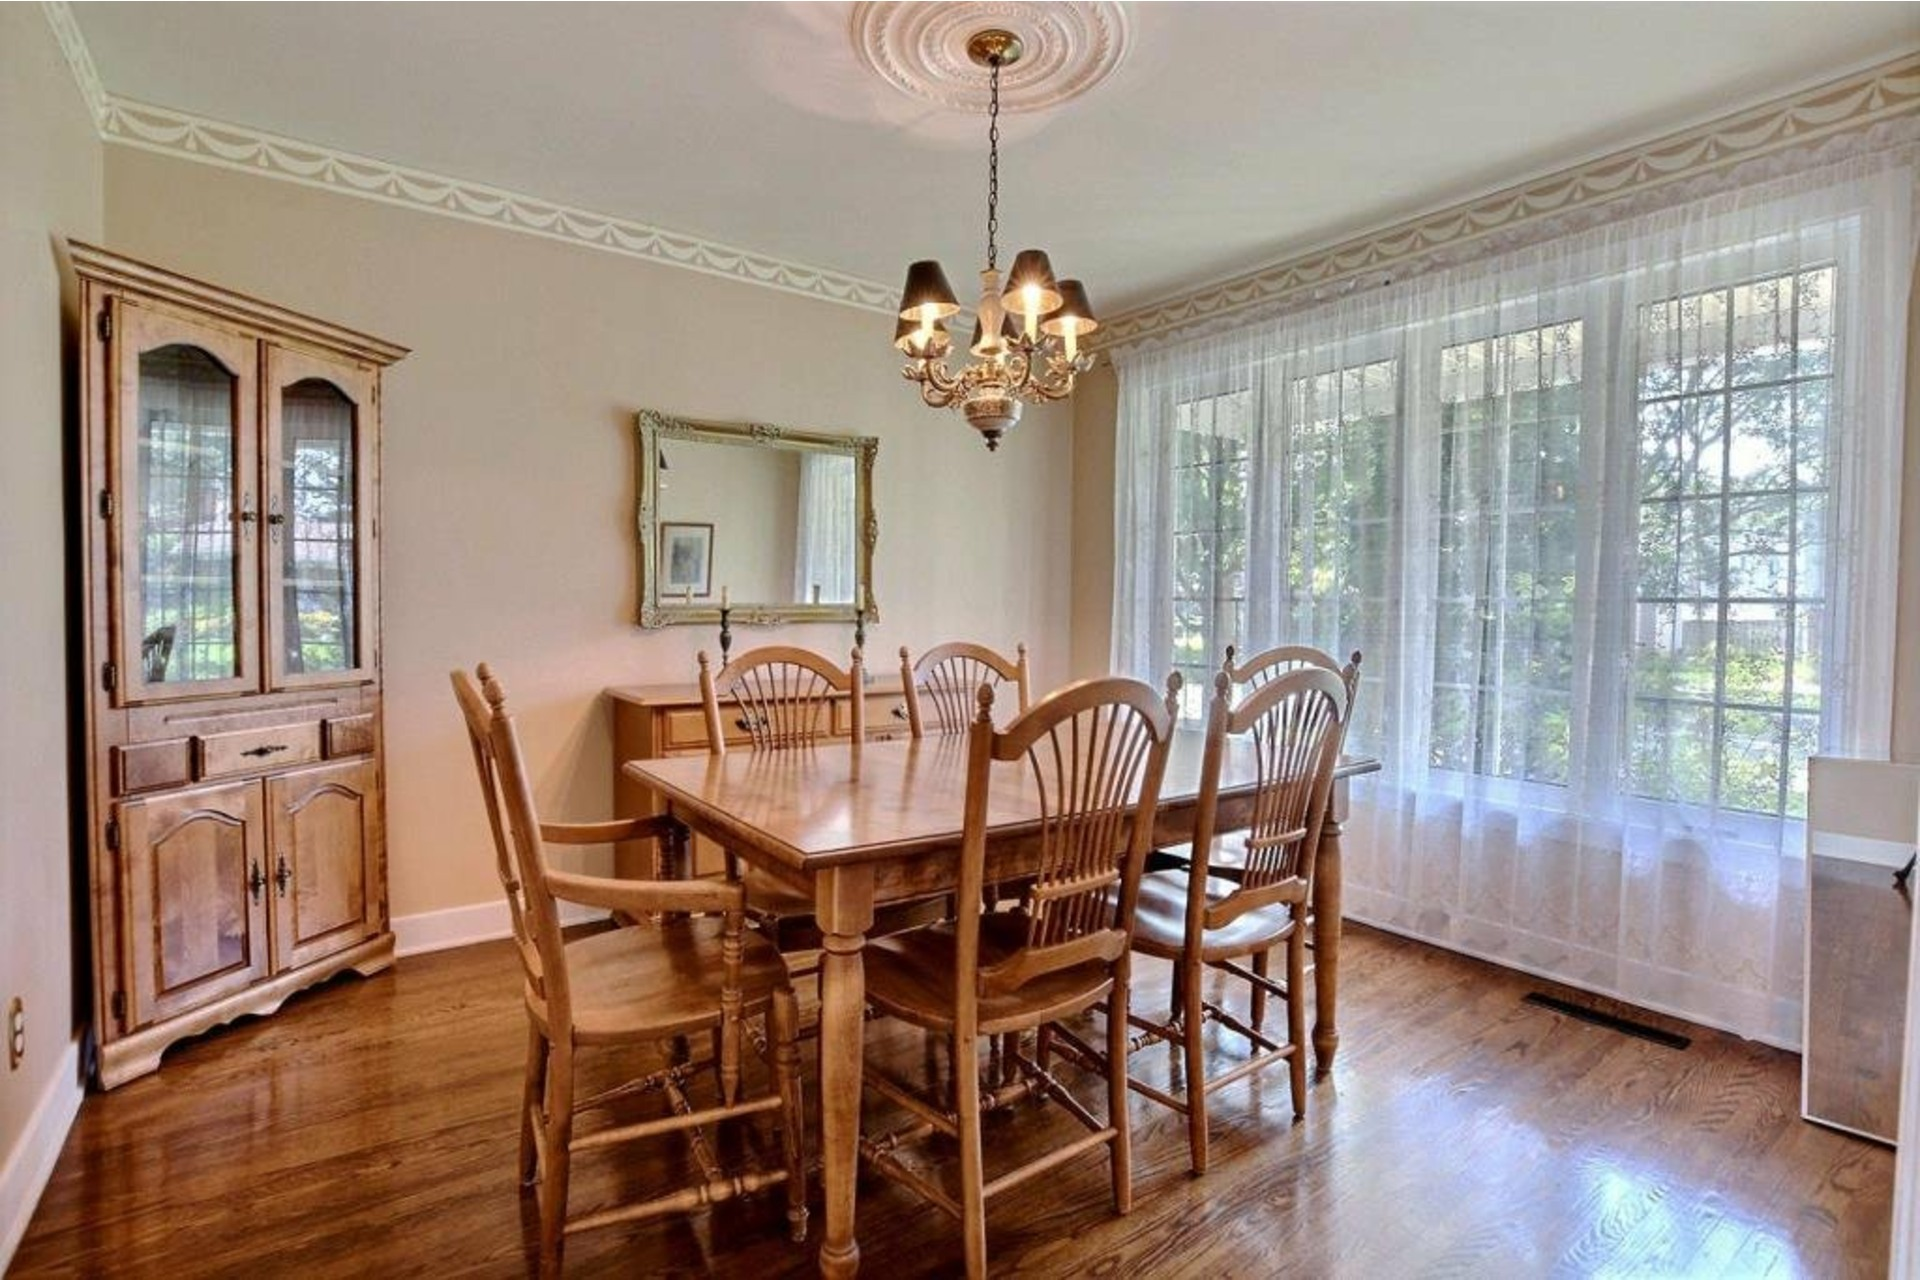 image 5 - House For rent Beaconsfield - 11 rooms